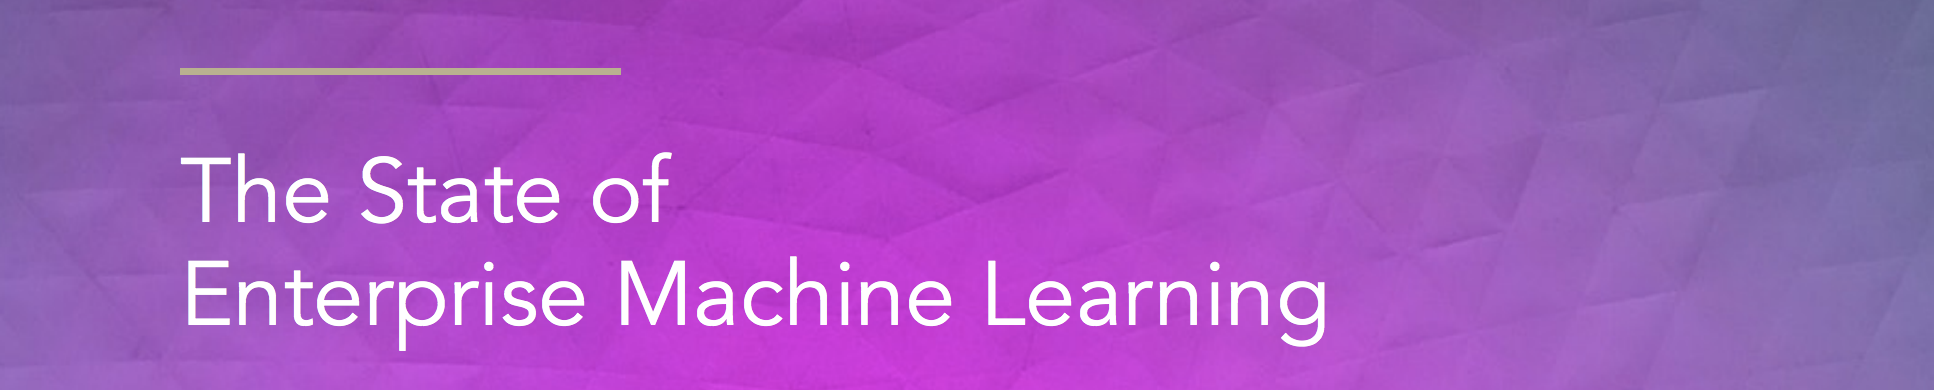 Machine Learning in Enterprise research results